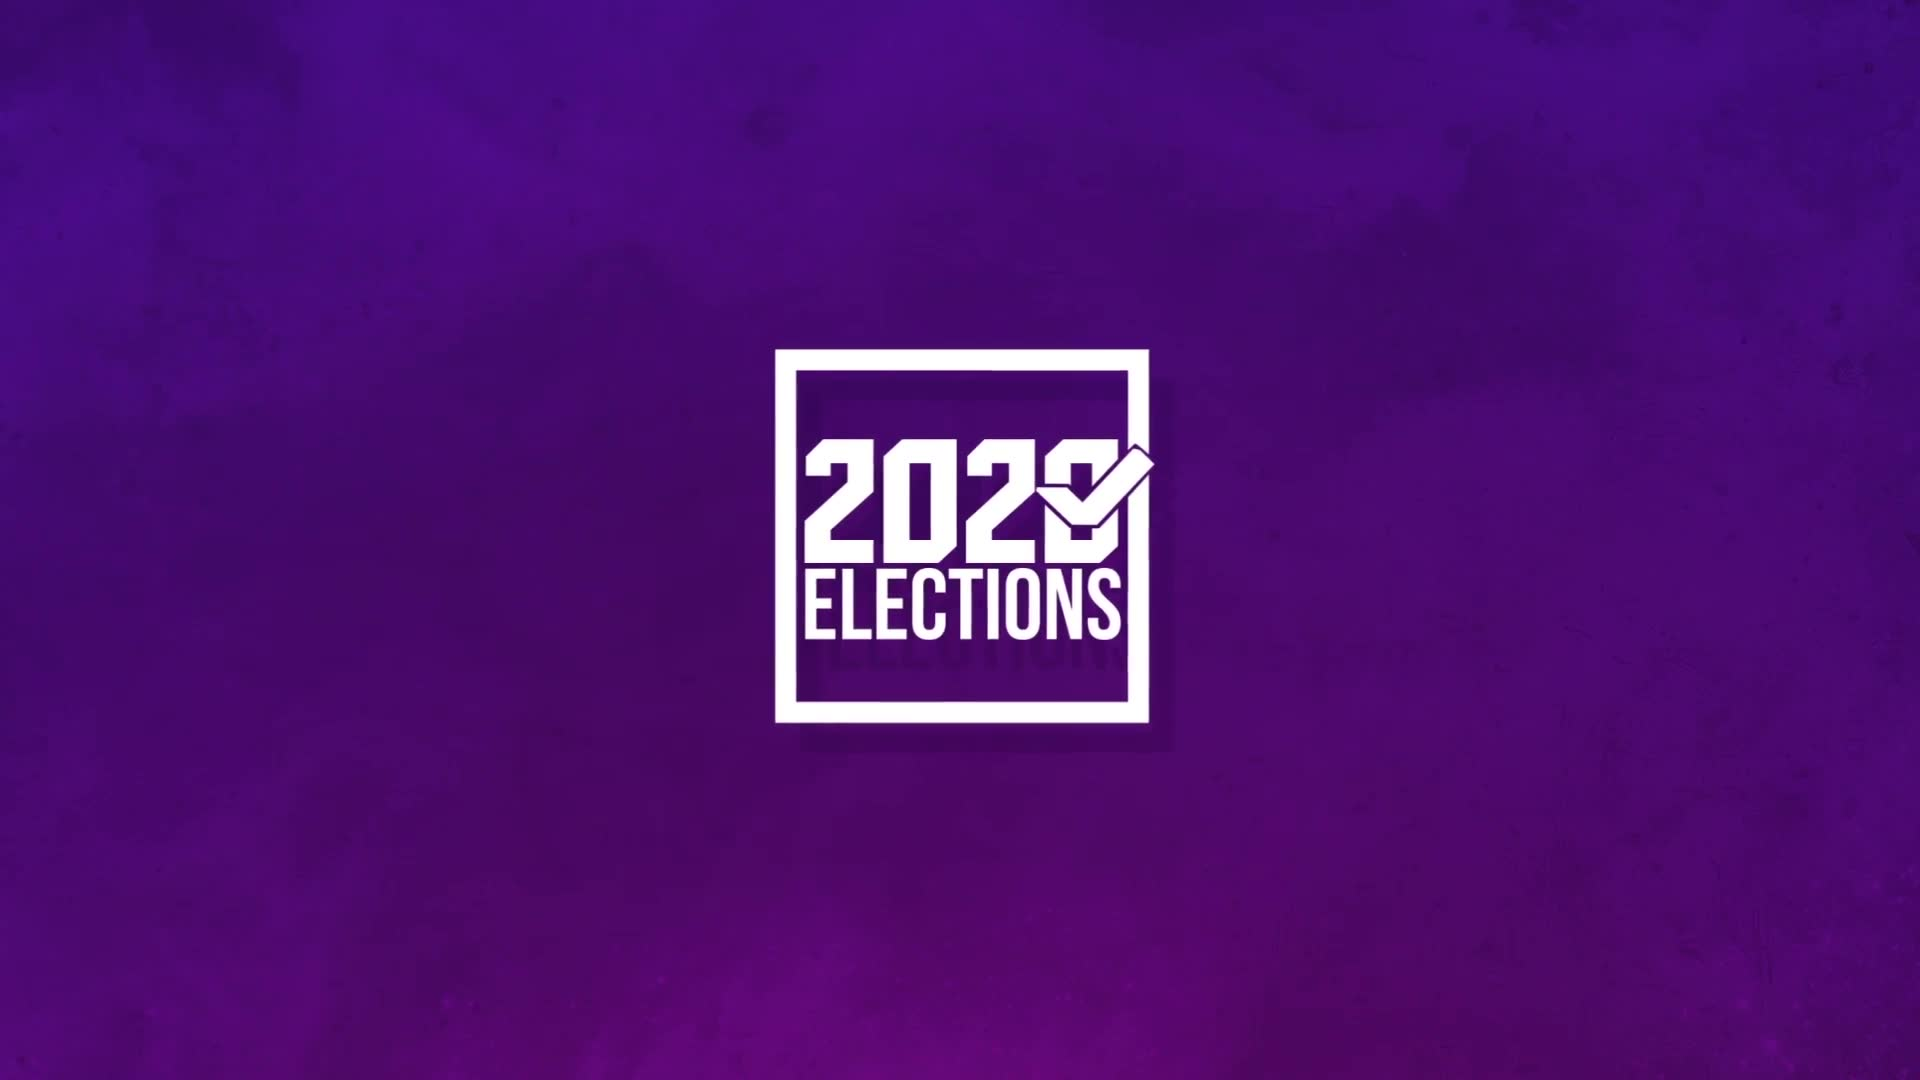 Election Promo for Premiere Videohive 28886075 Premiere Pro Image 2